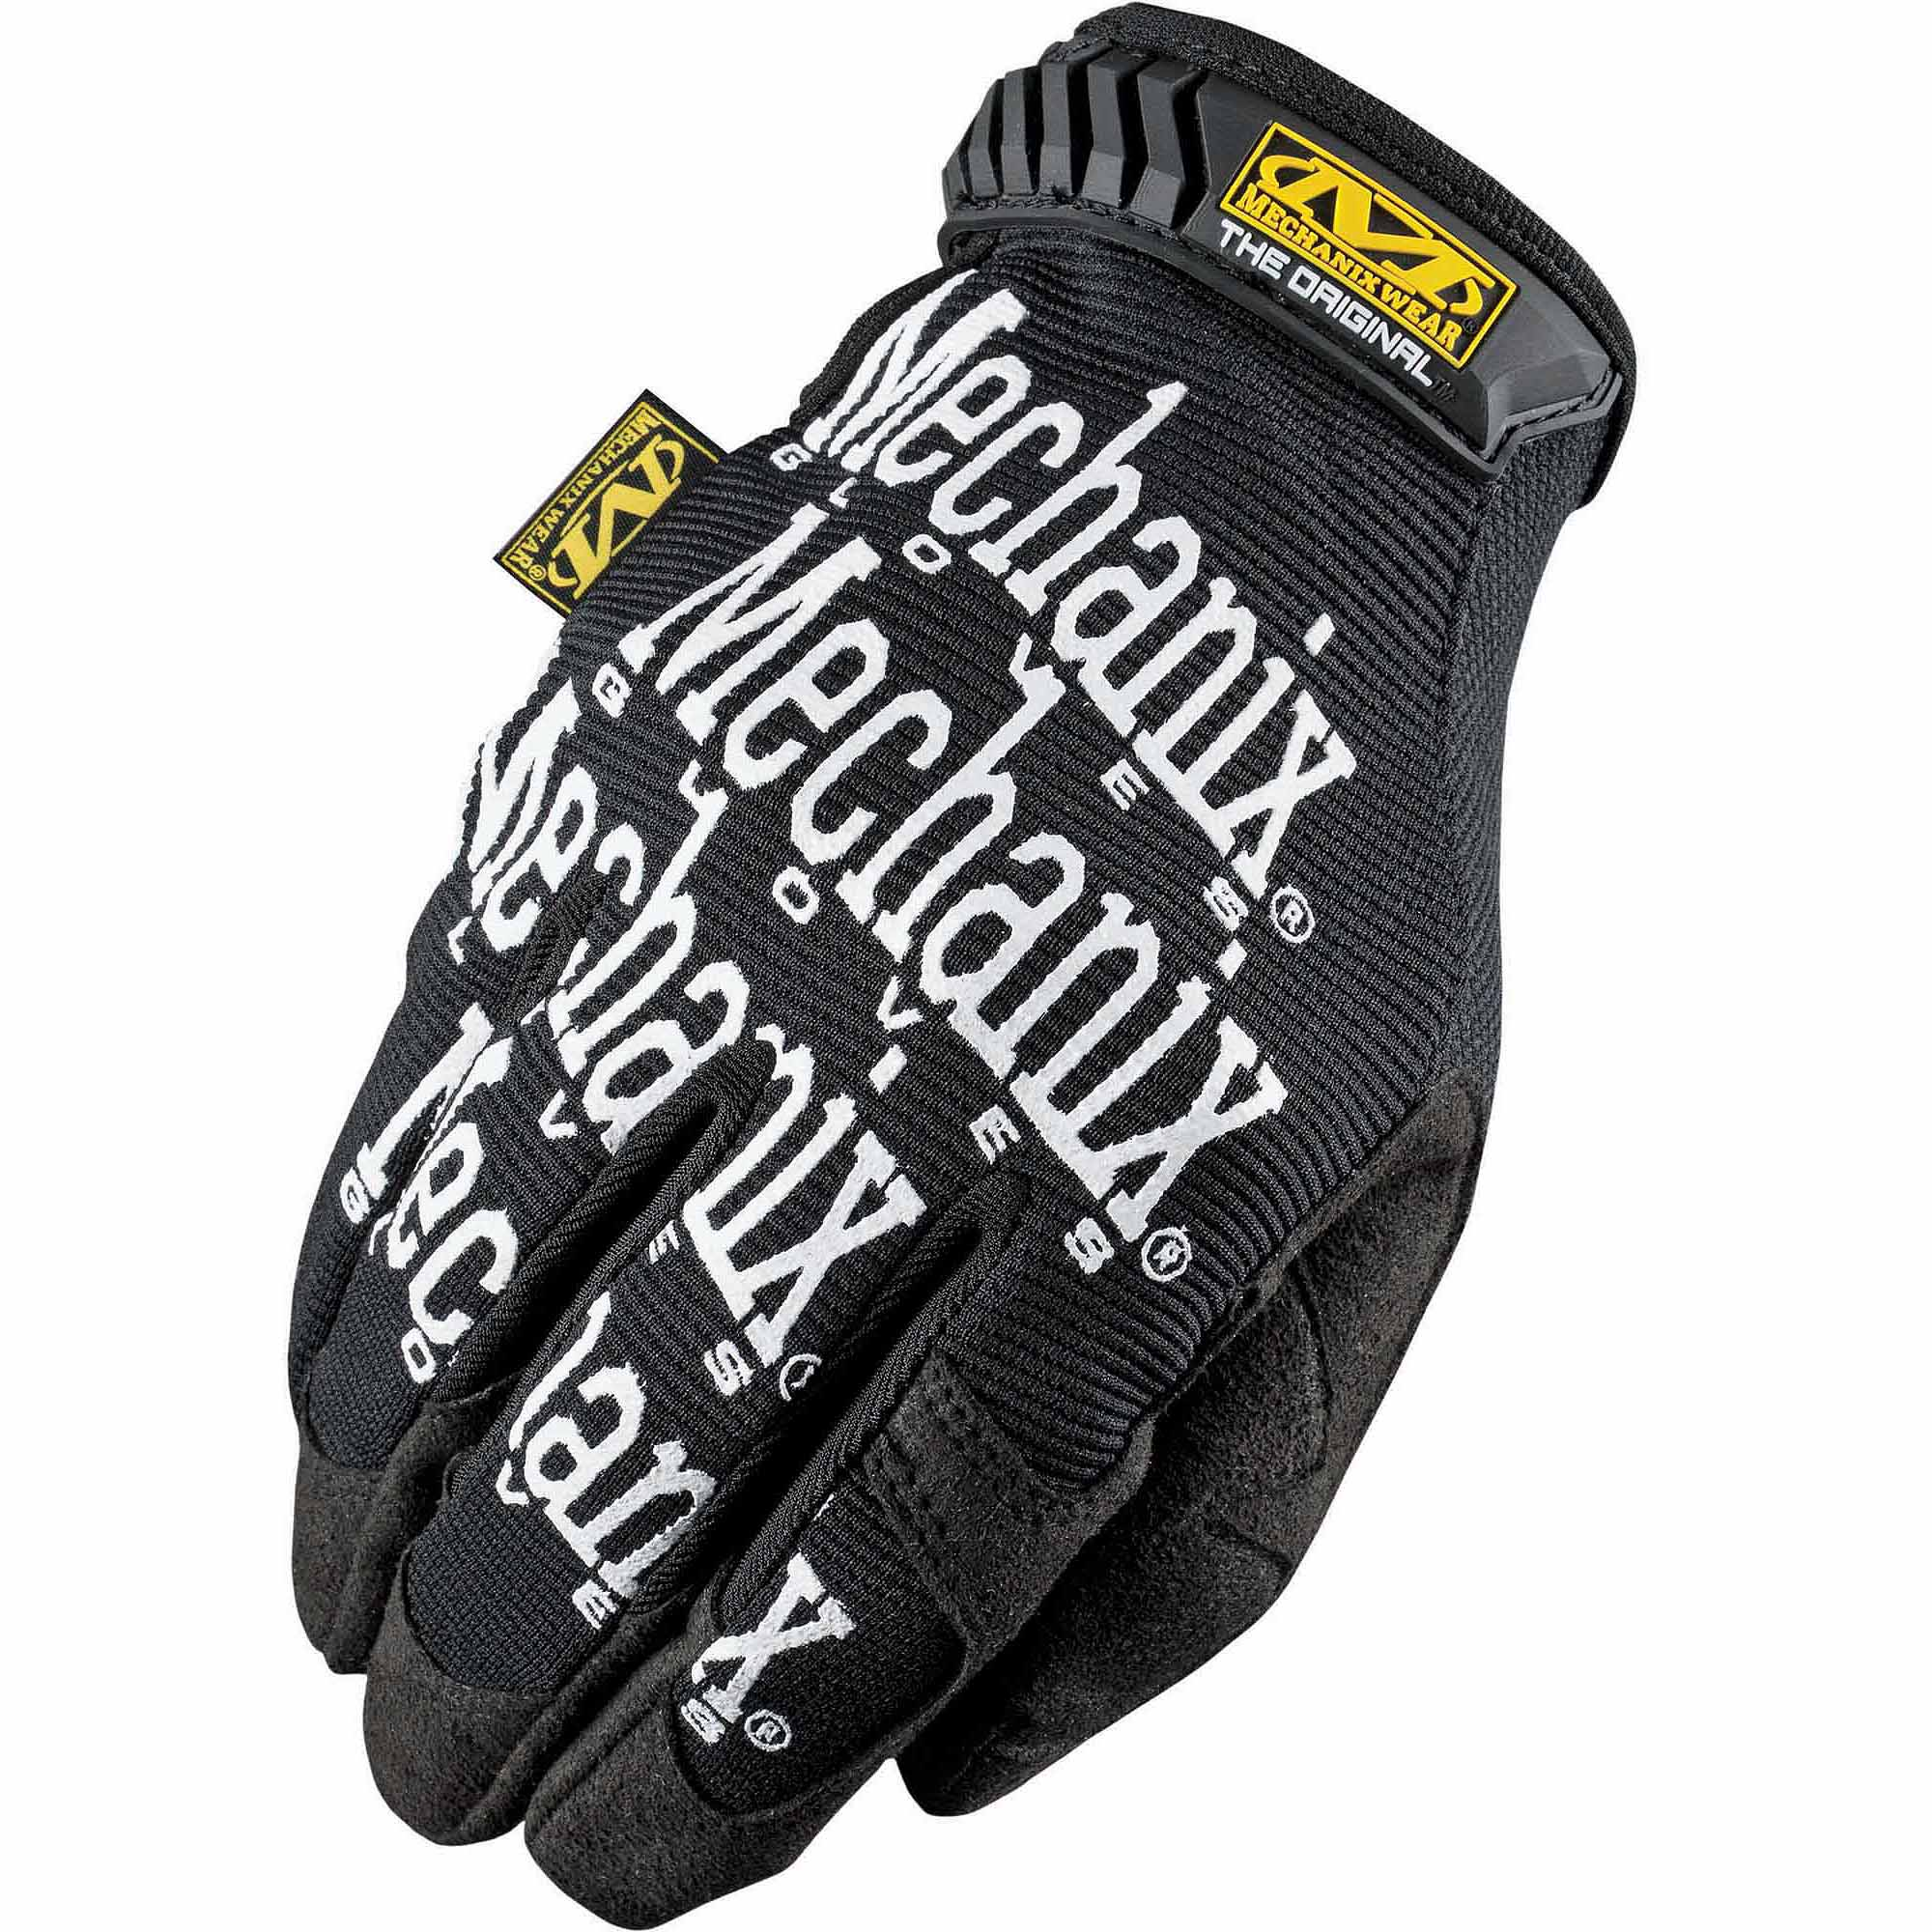 Mechanix Wear Original Glove, Black